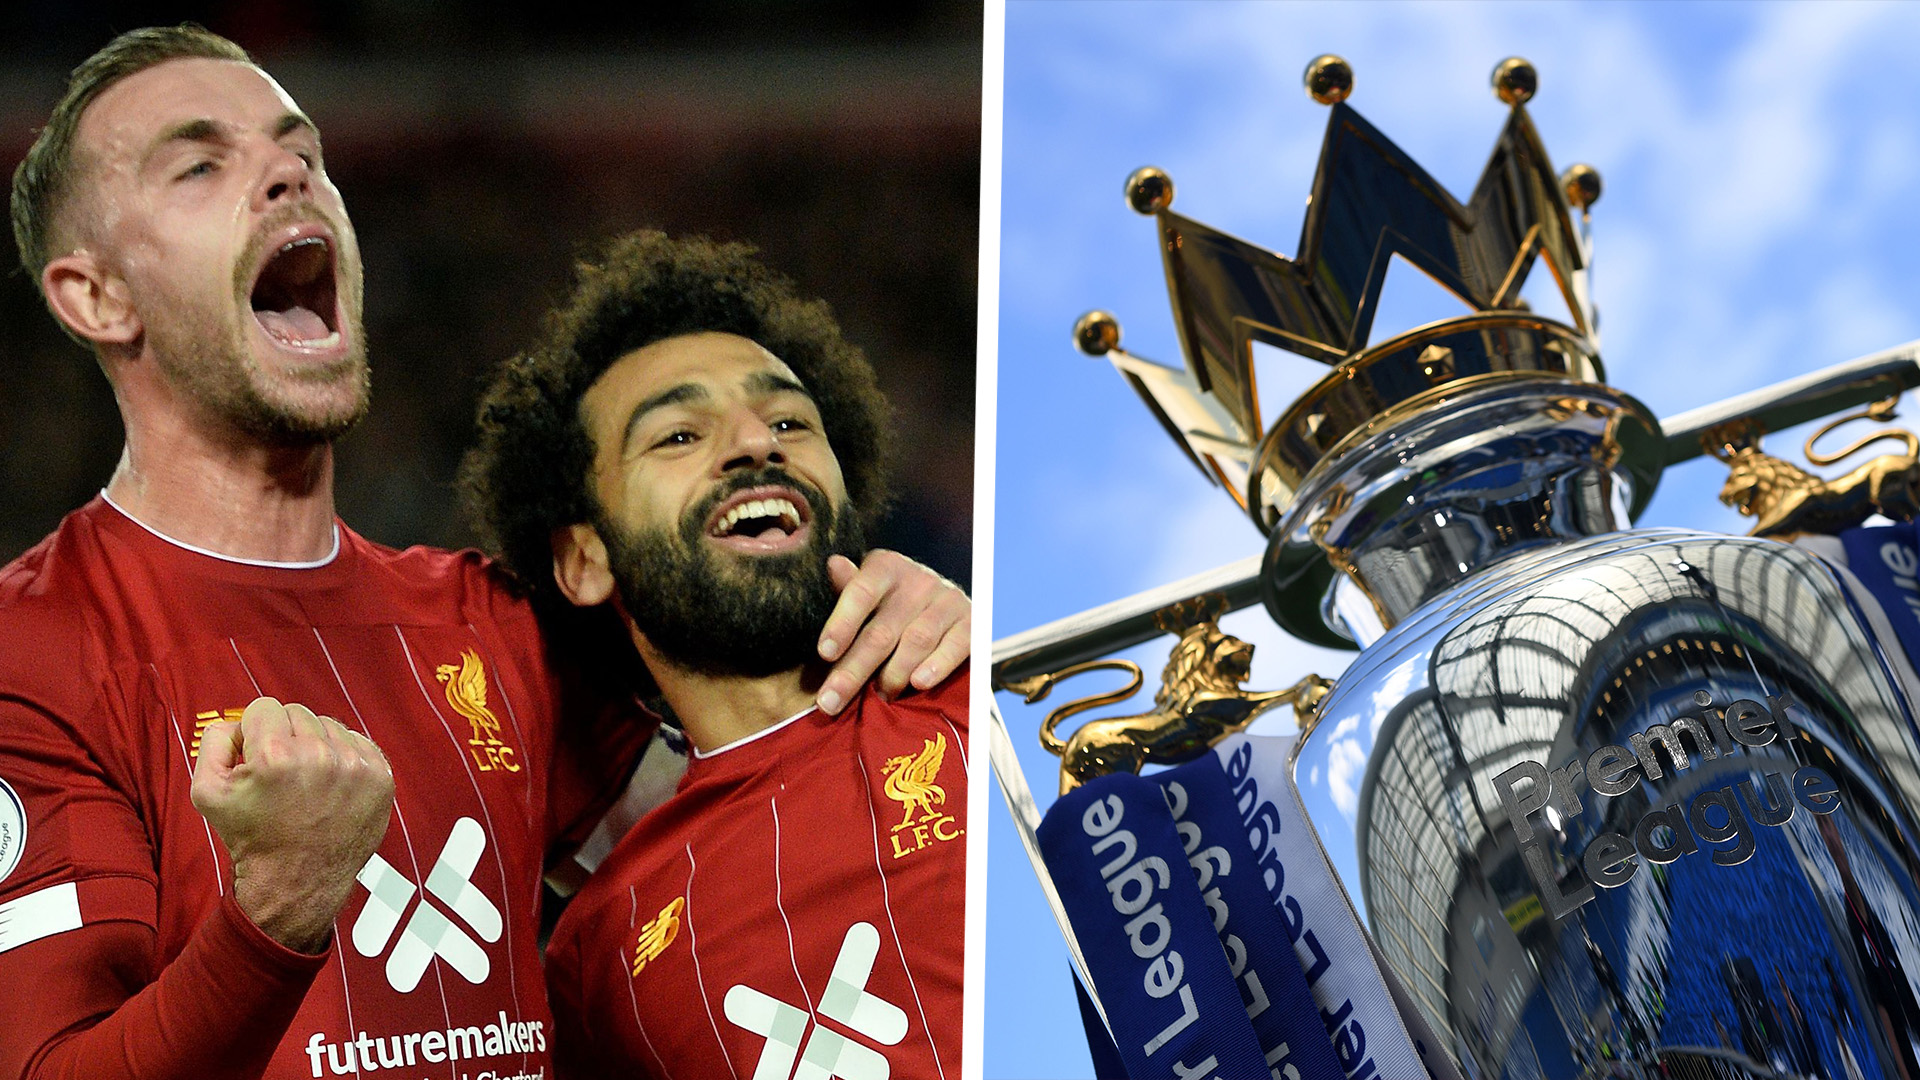 Premier League players don't want to be guinea pigs, says PFA chief